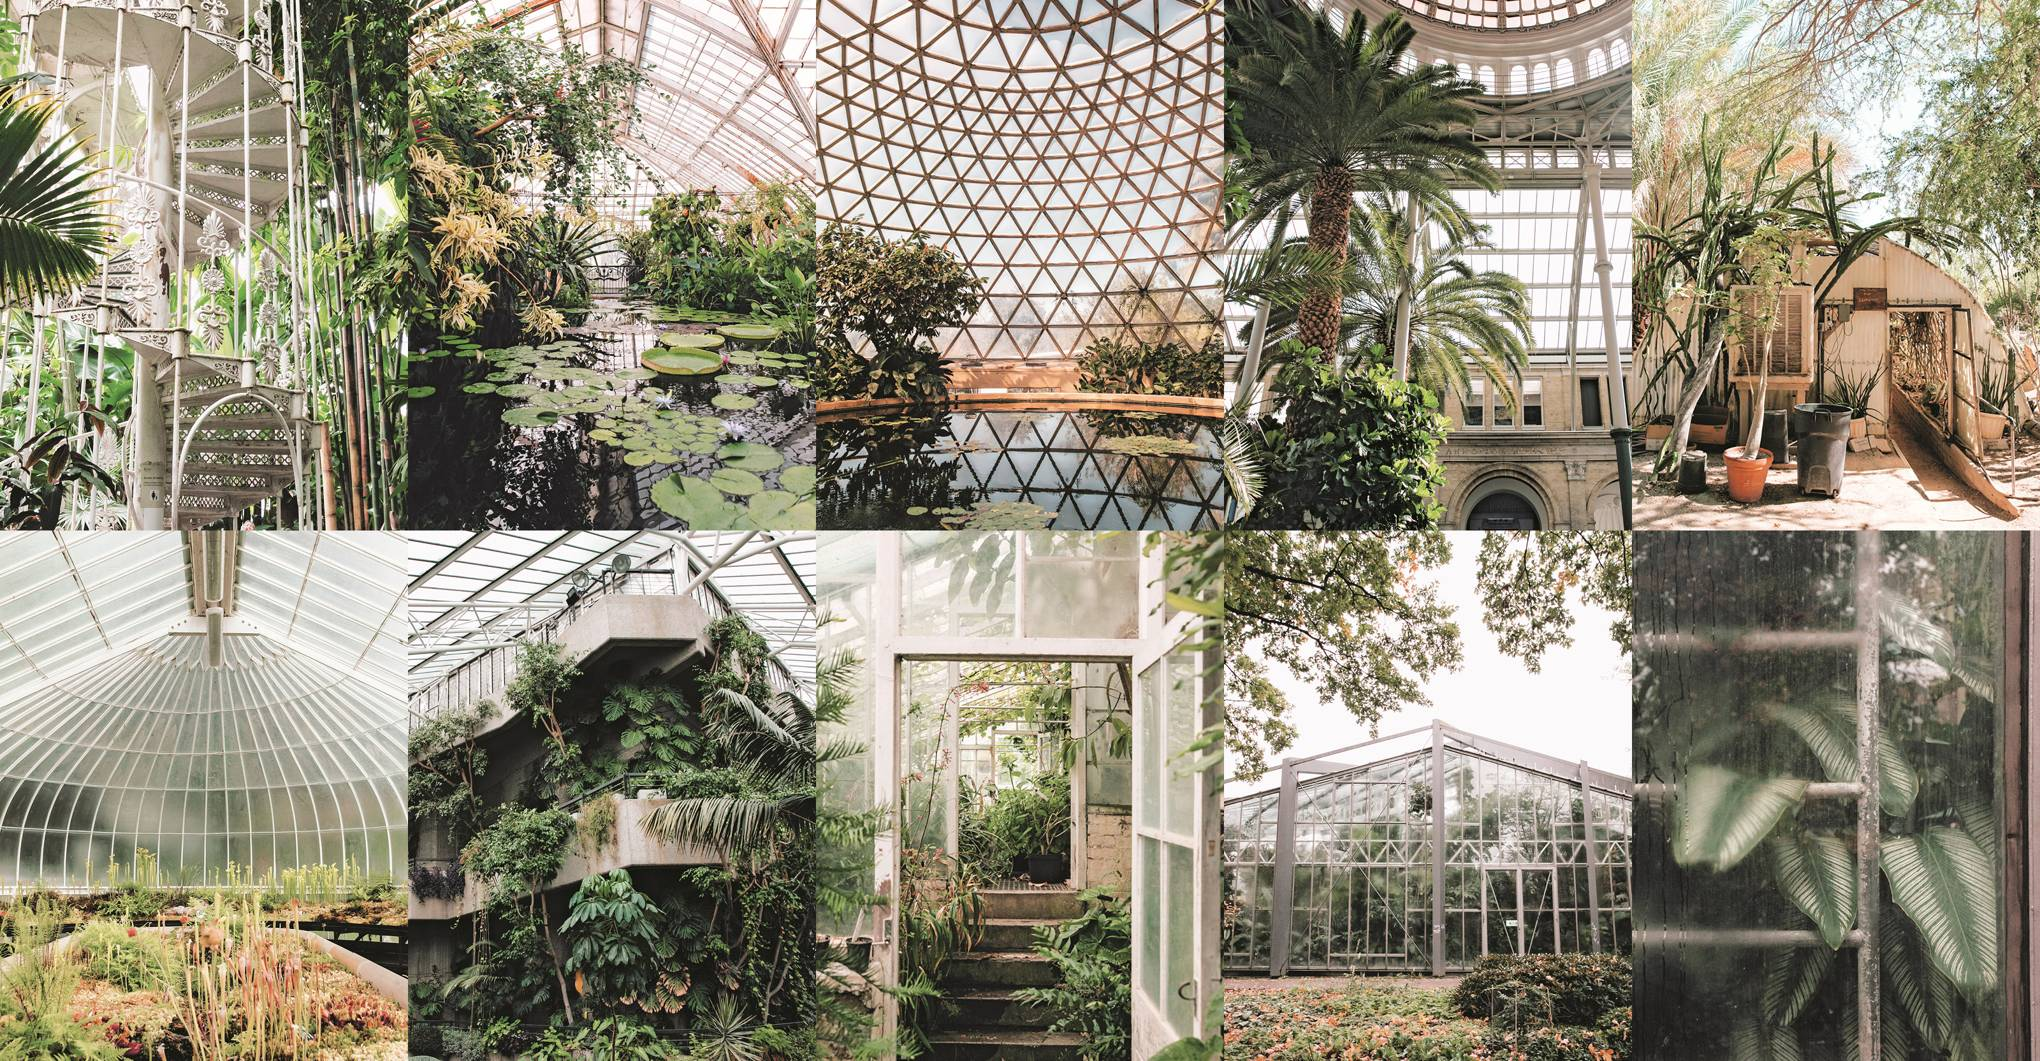 The most beautiful greenhouses in the world